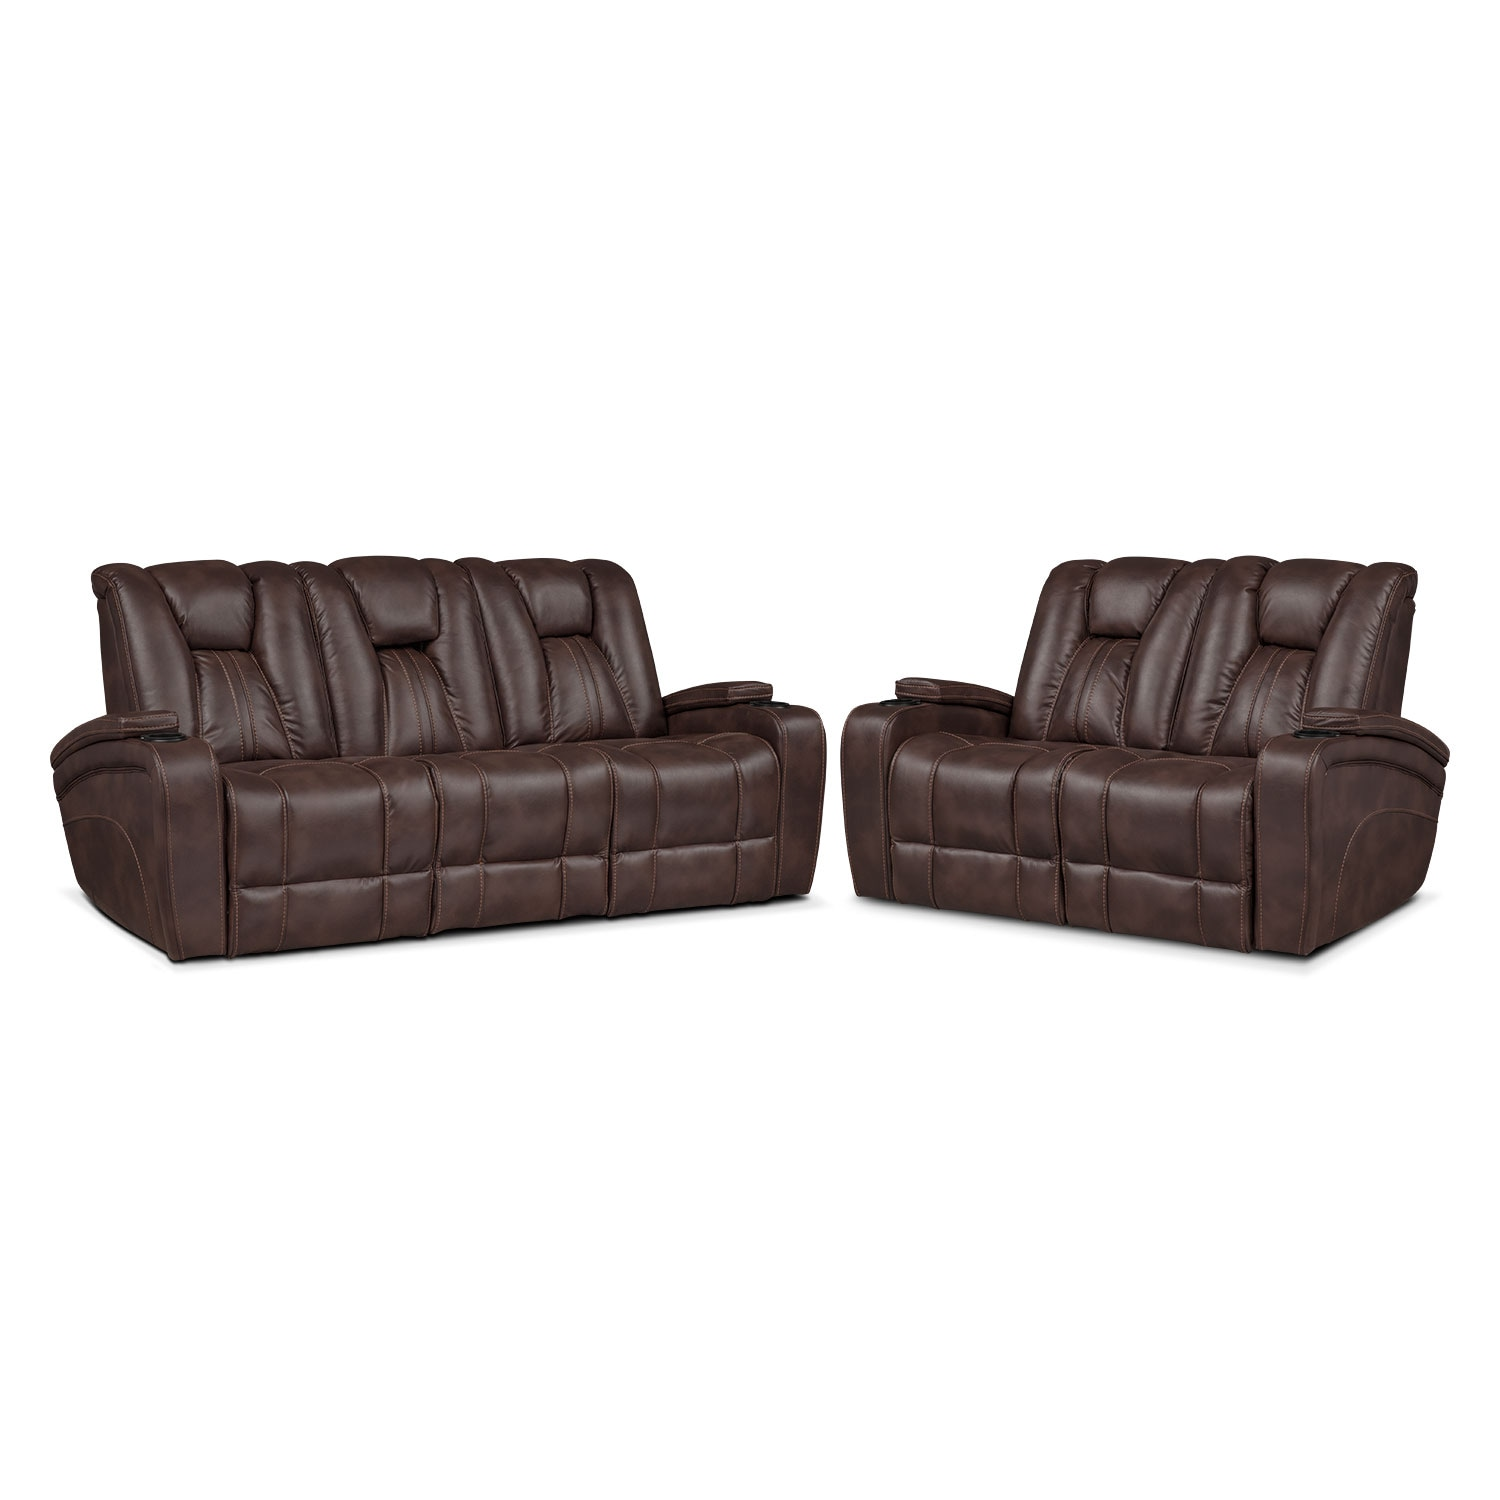 Pulsar dual power reclining sofa and dual power reclining loveseat set brown american Power loveseat recliner